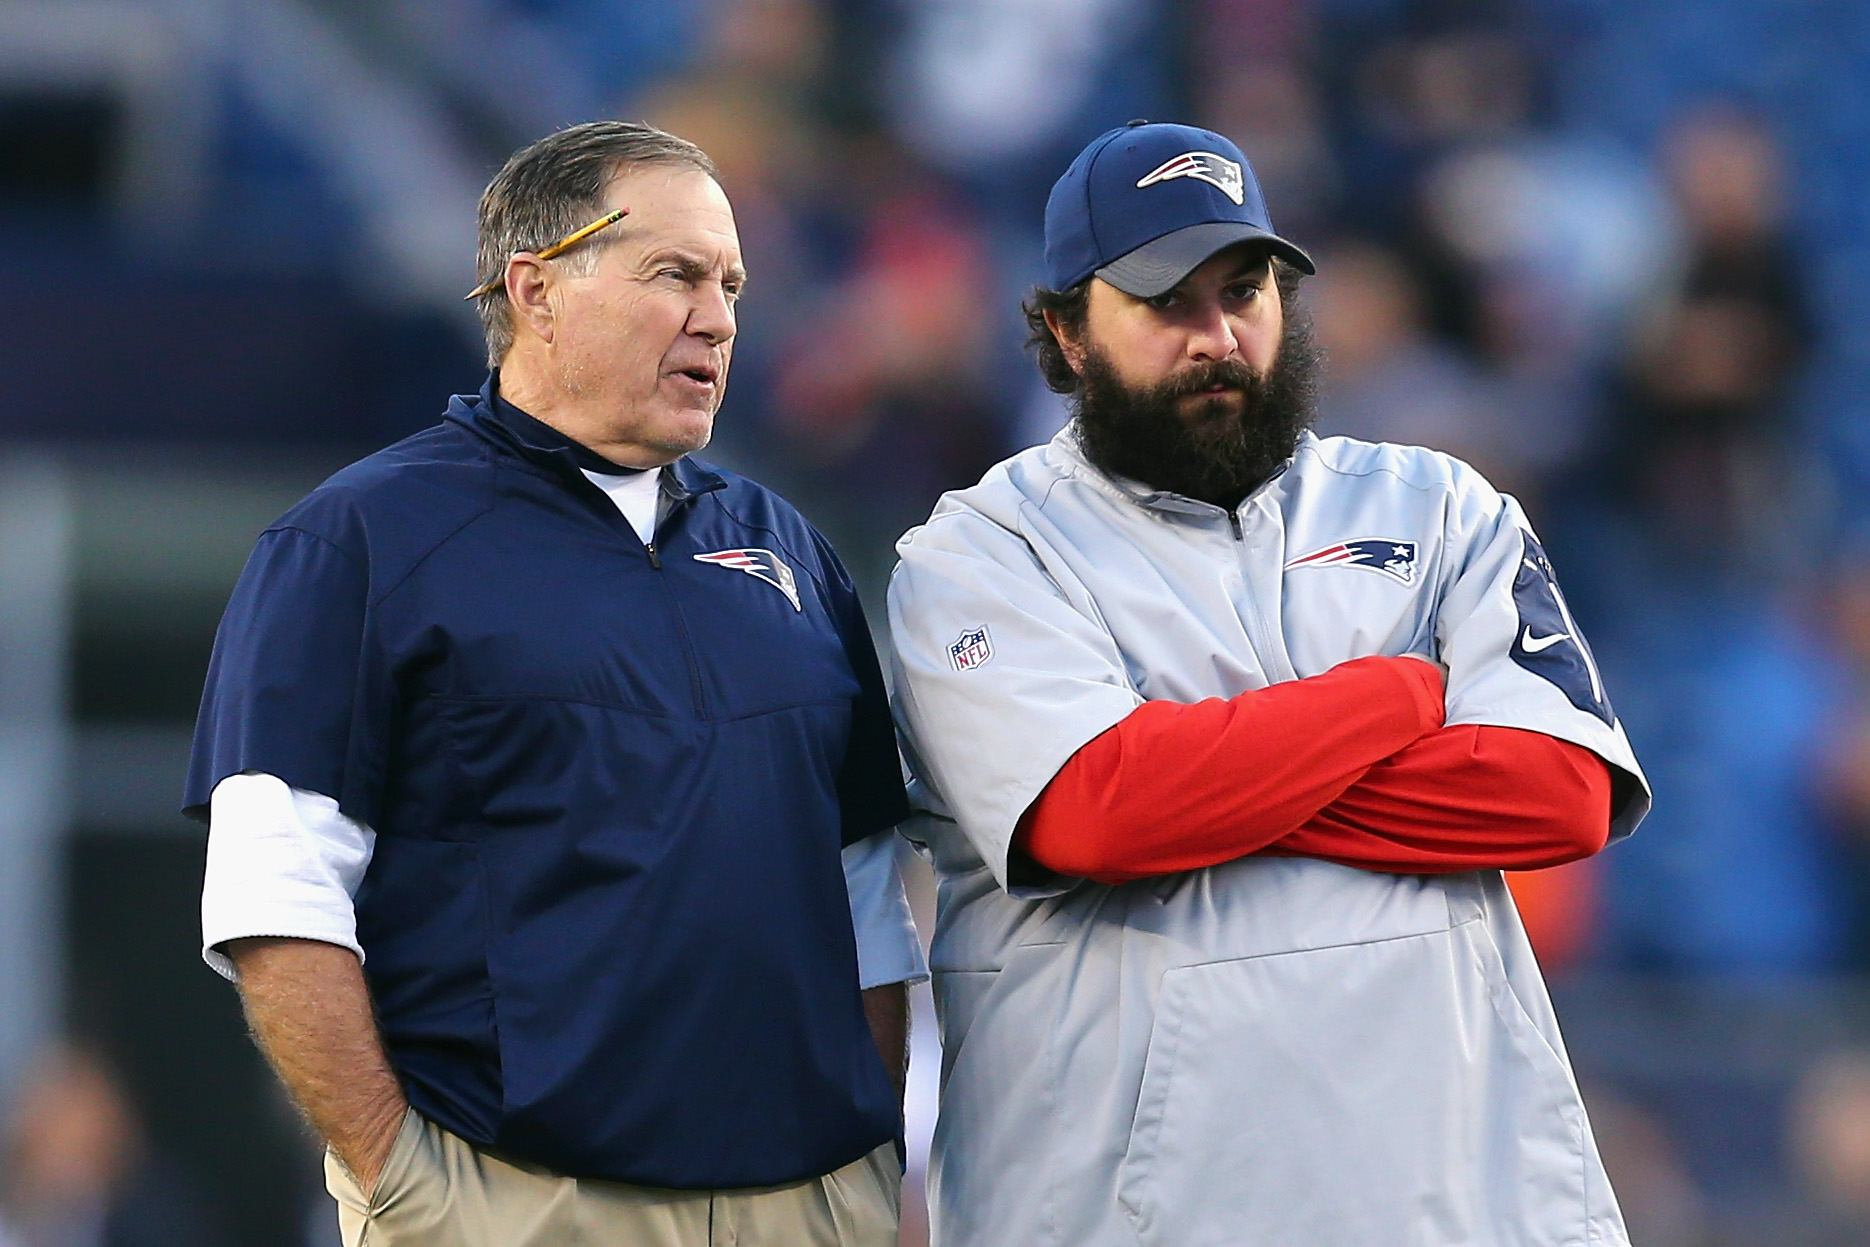 Patriots head coach Bill Belichick of the New England Patriots talks with defensive coordinator Matt Patricia.